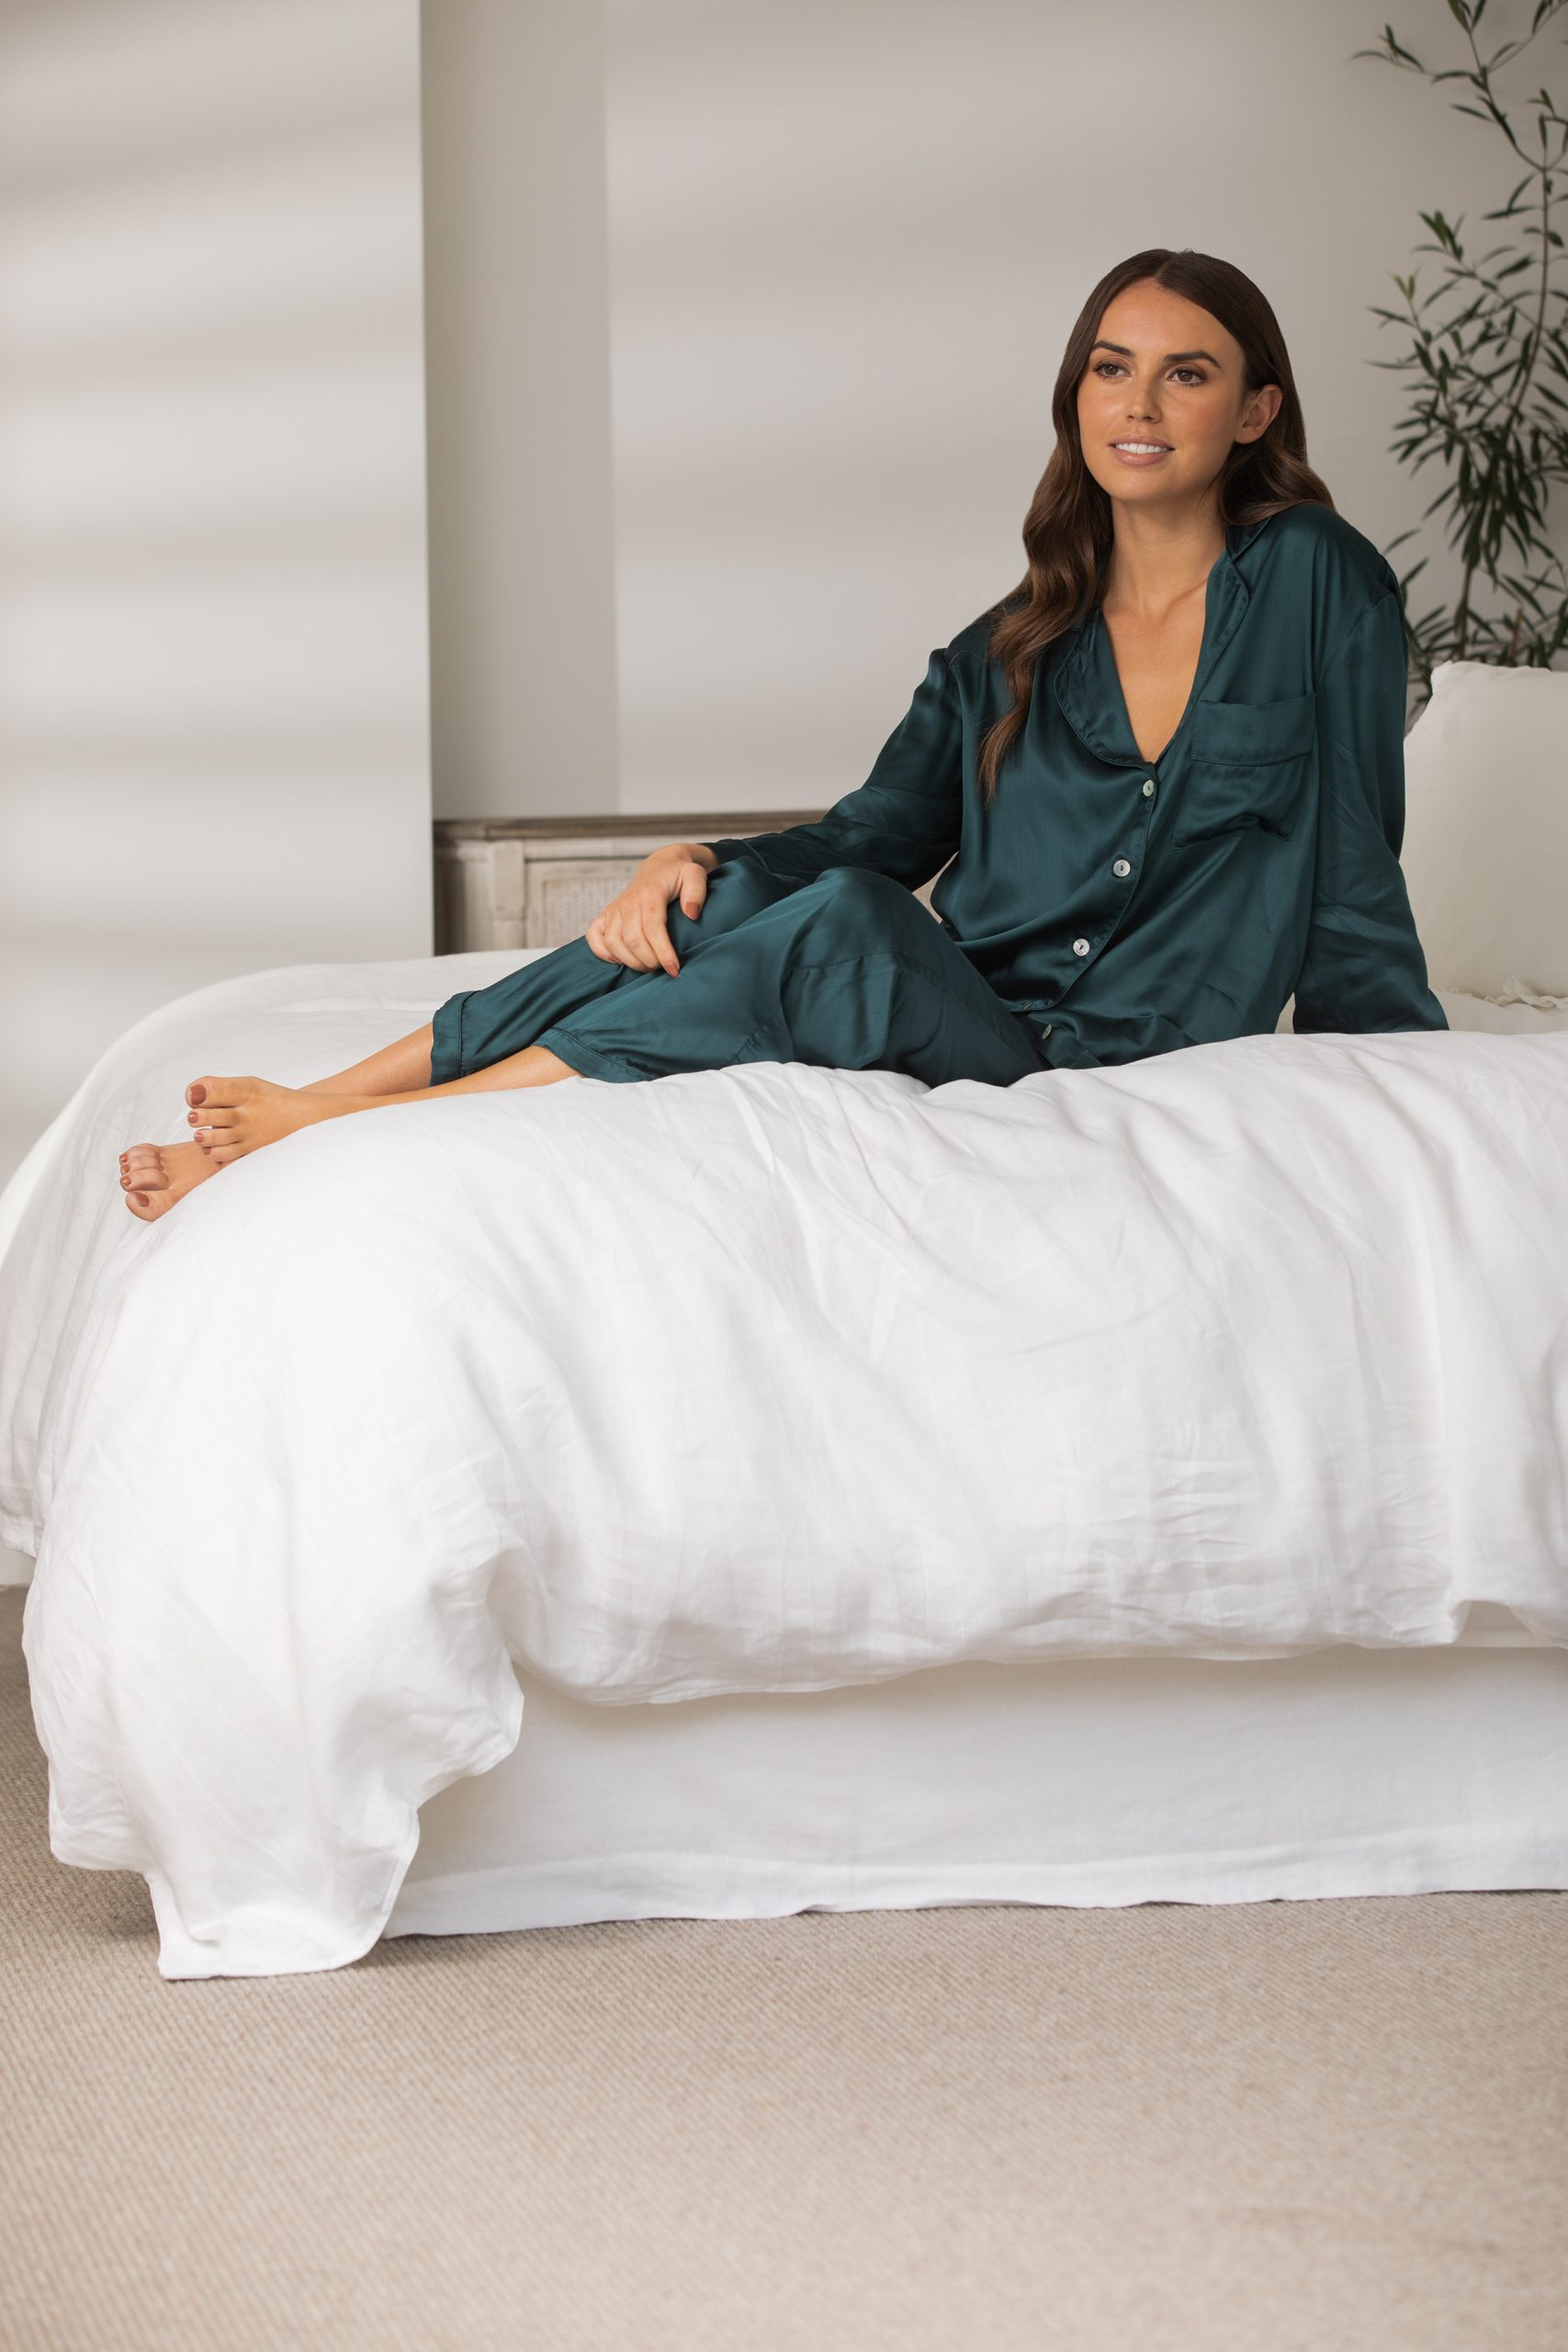 Wallace Cotton Mother of Pearl PJ Shirt $79.90 PJ Pants 6 $79.90